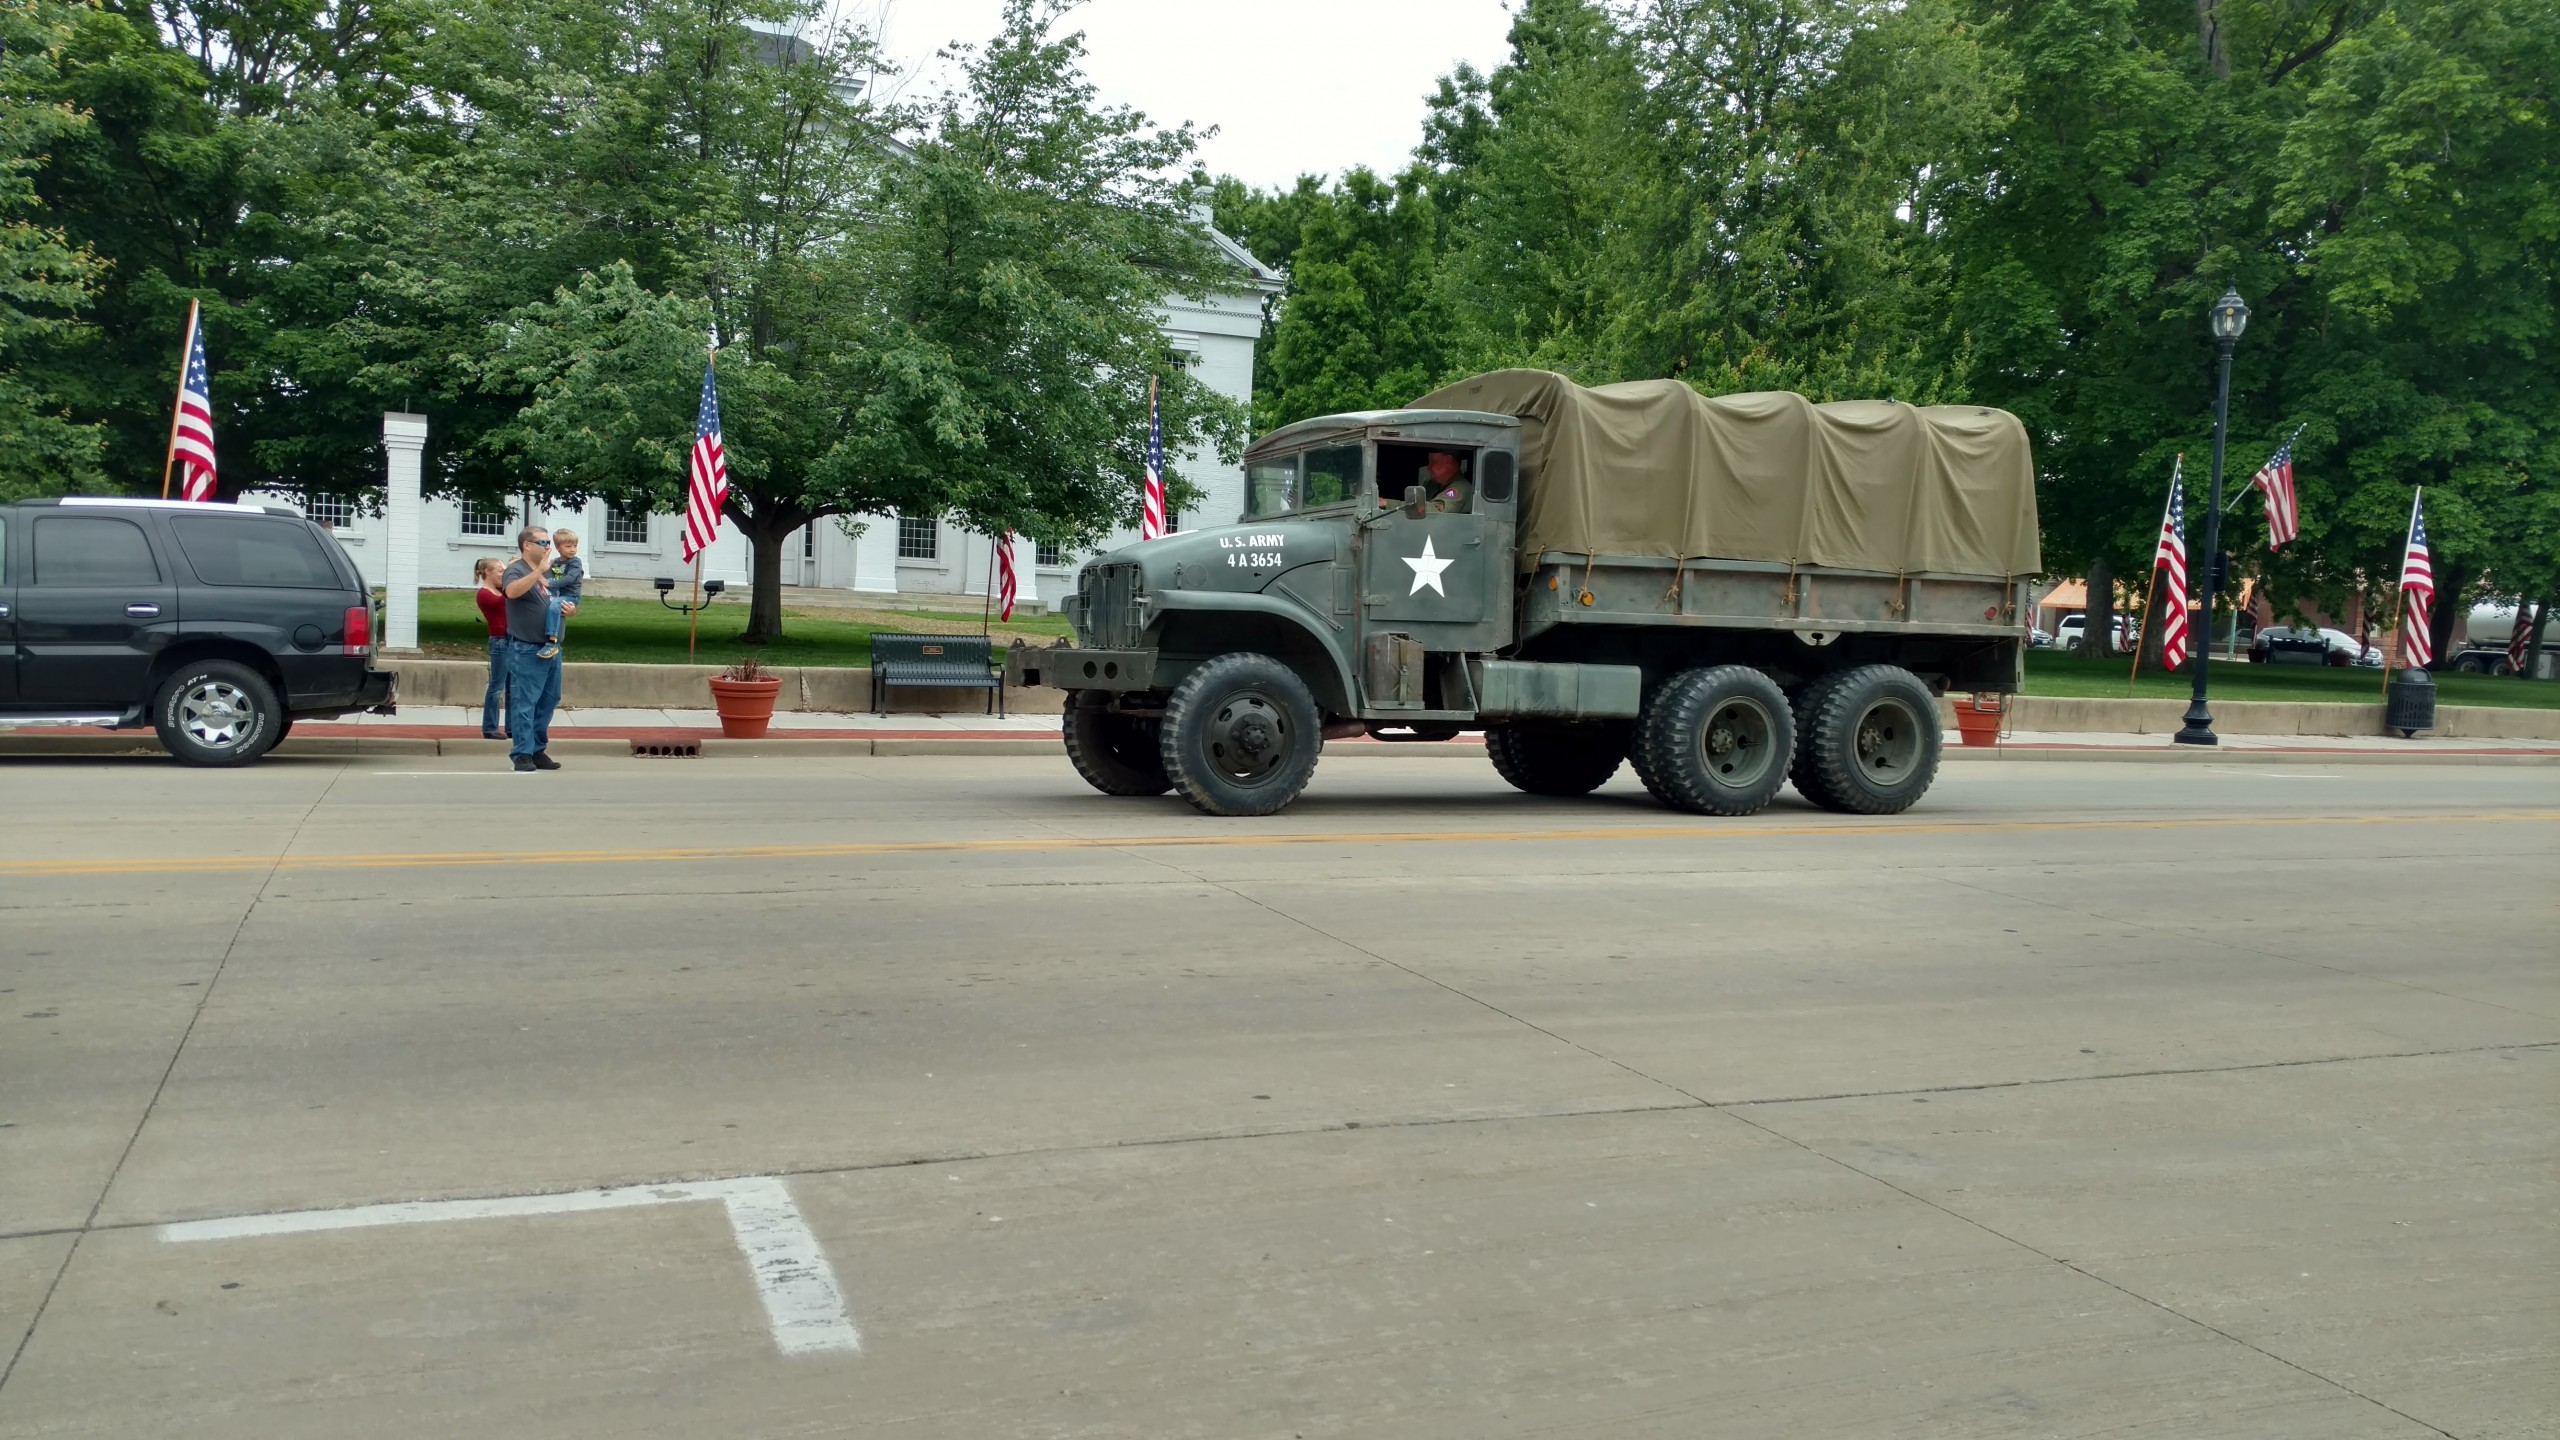 Vandalia American Legion hosts Armed Forces Day activities today and Sunday